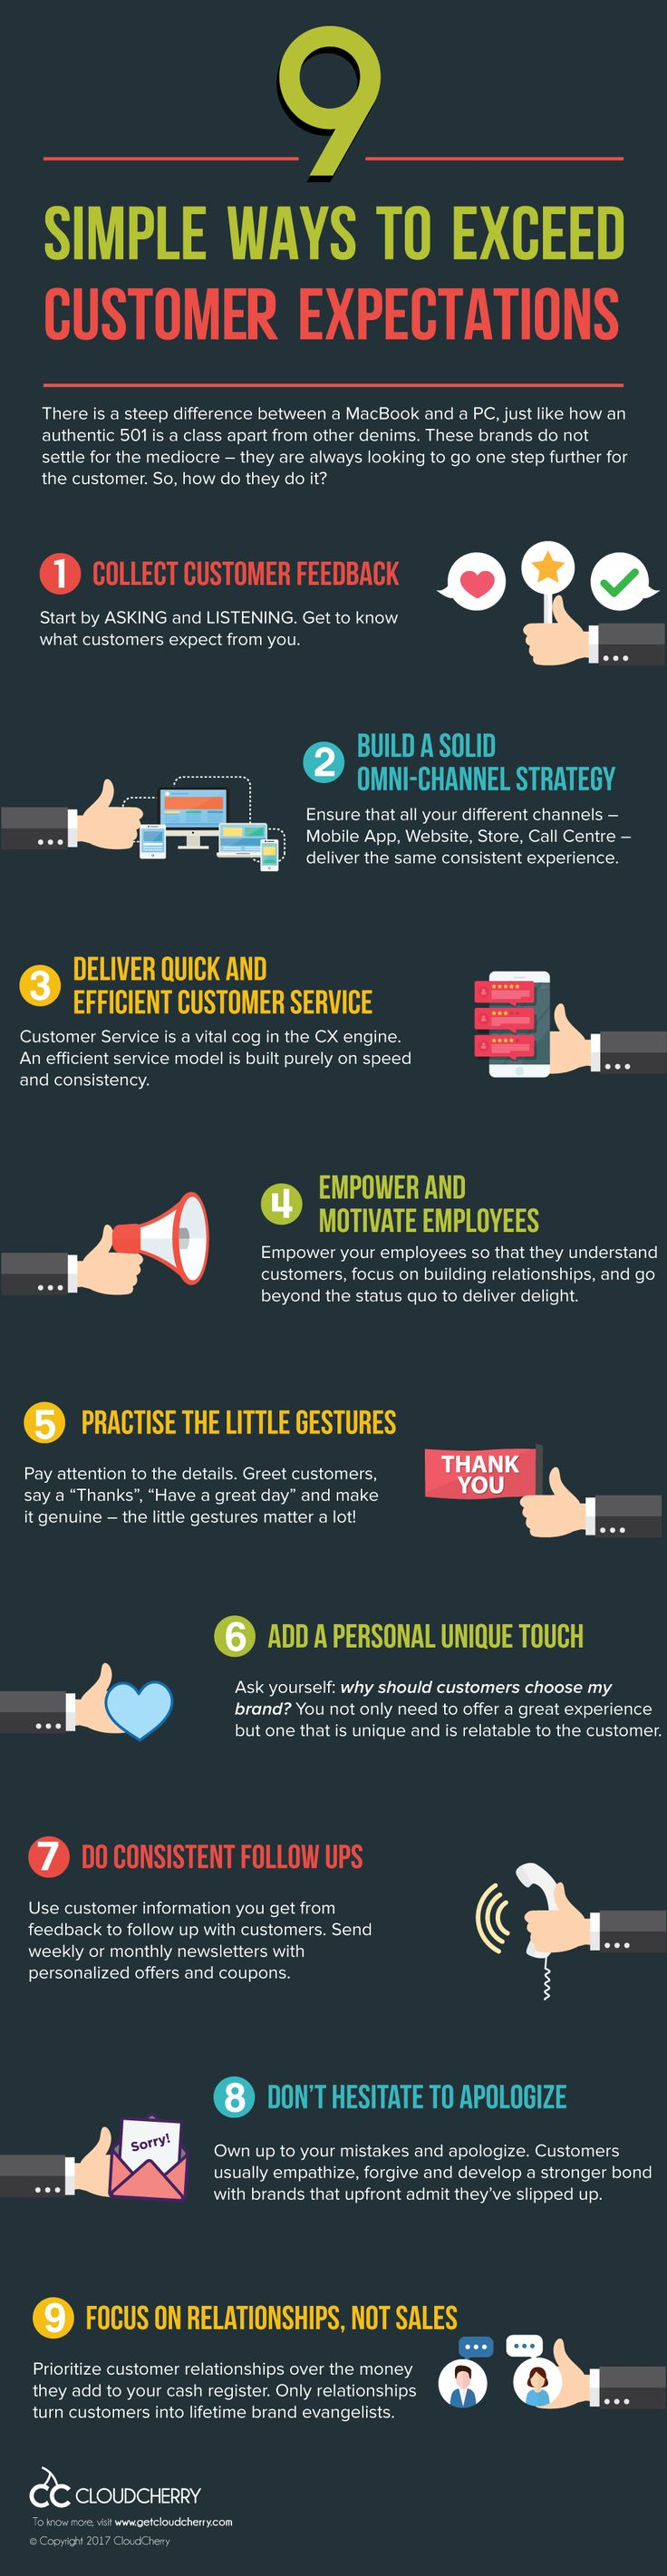 5 tips for hiring the best customer service employees capterra blog